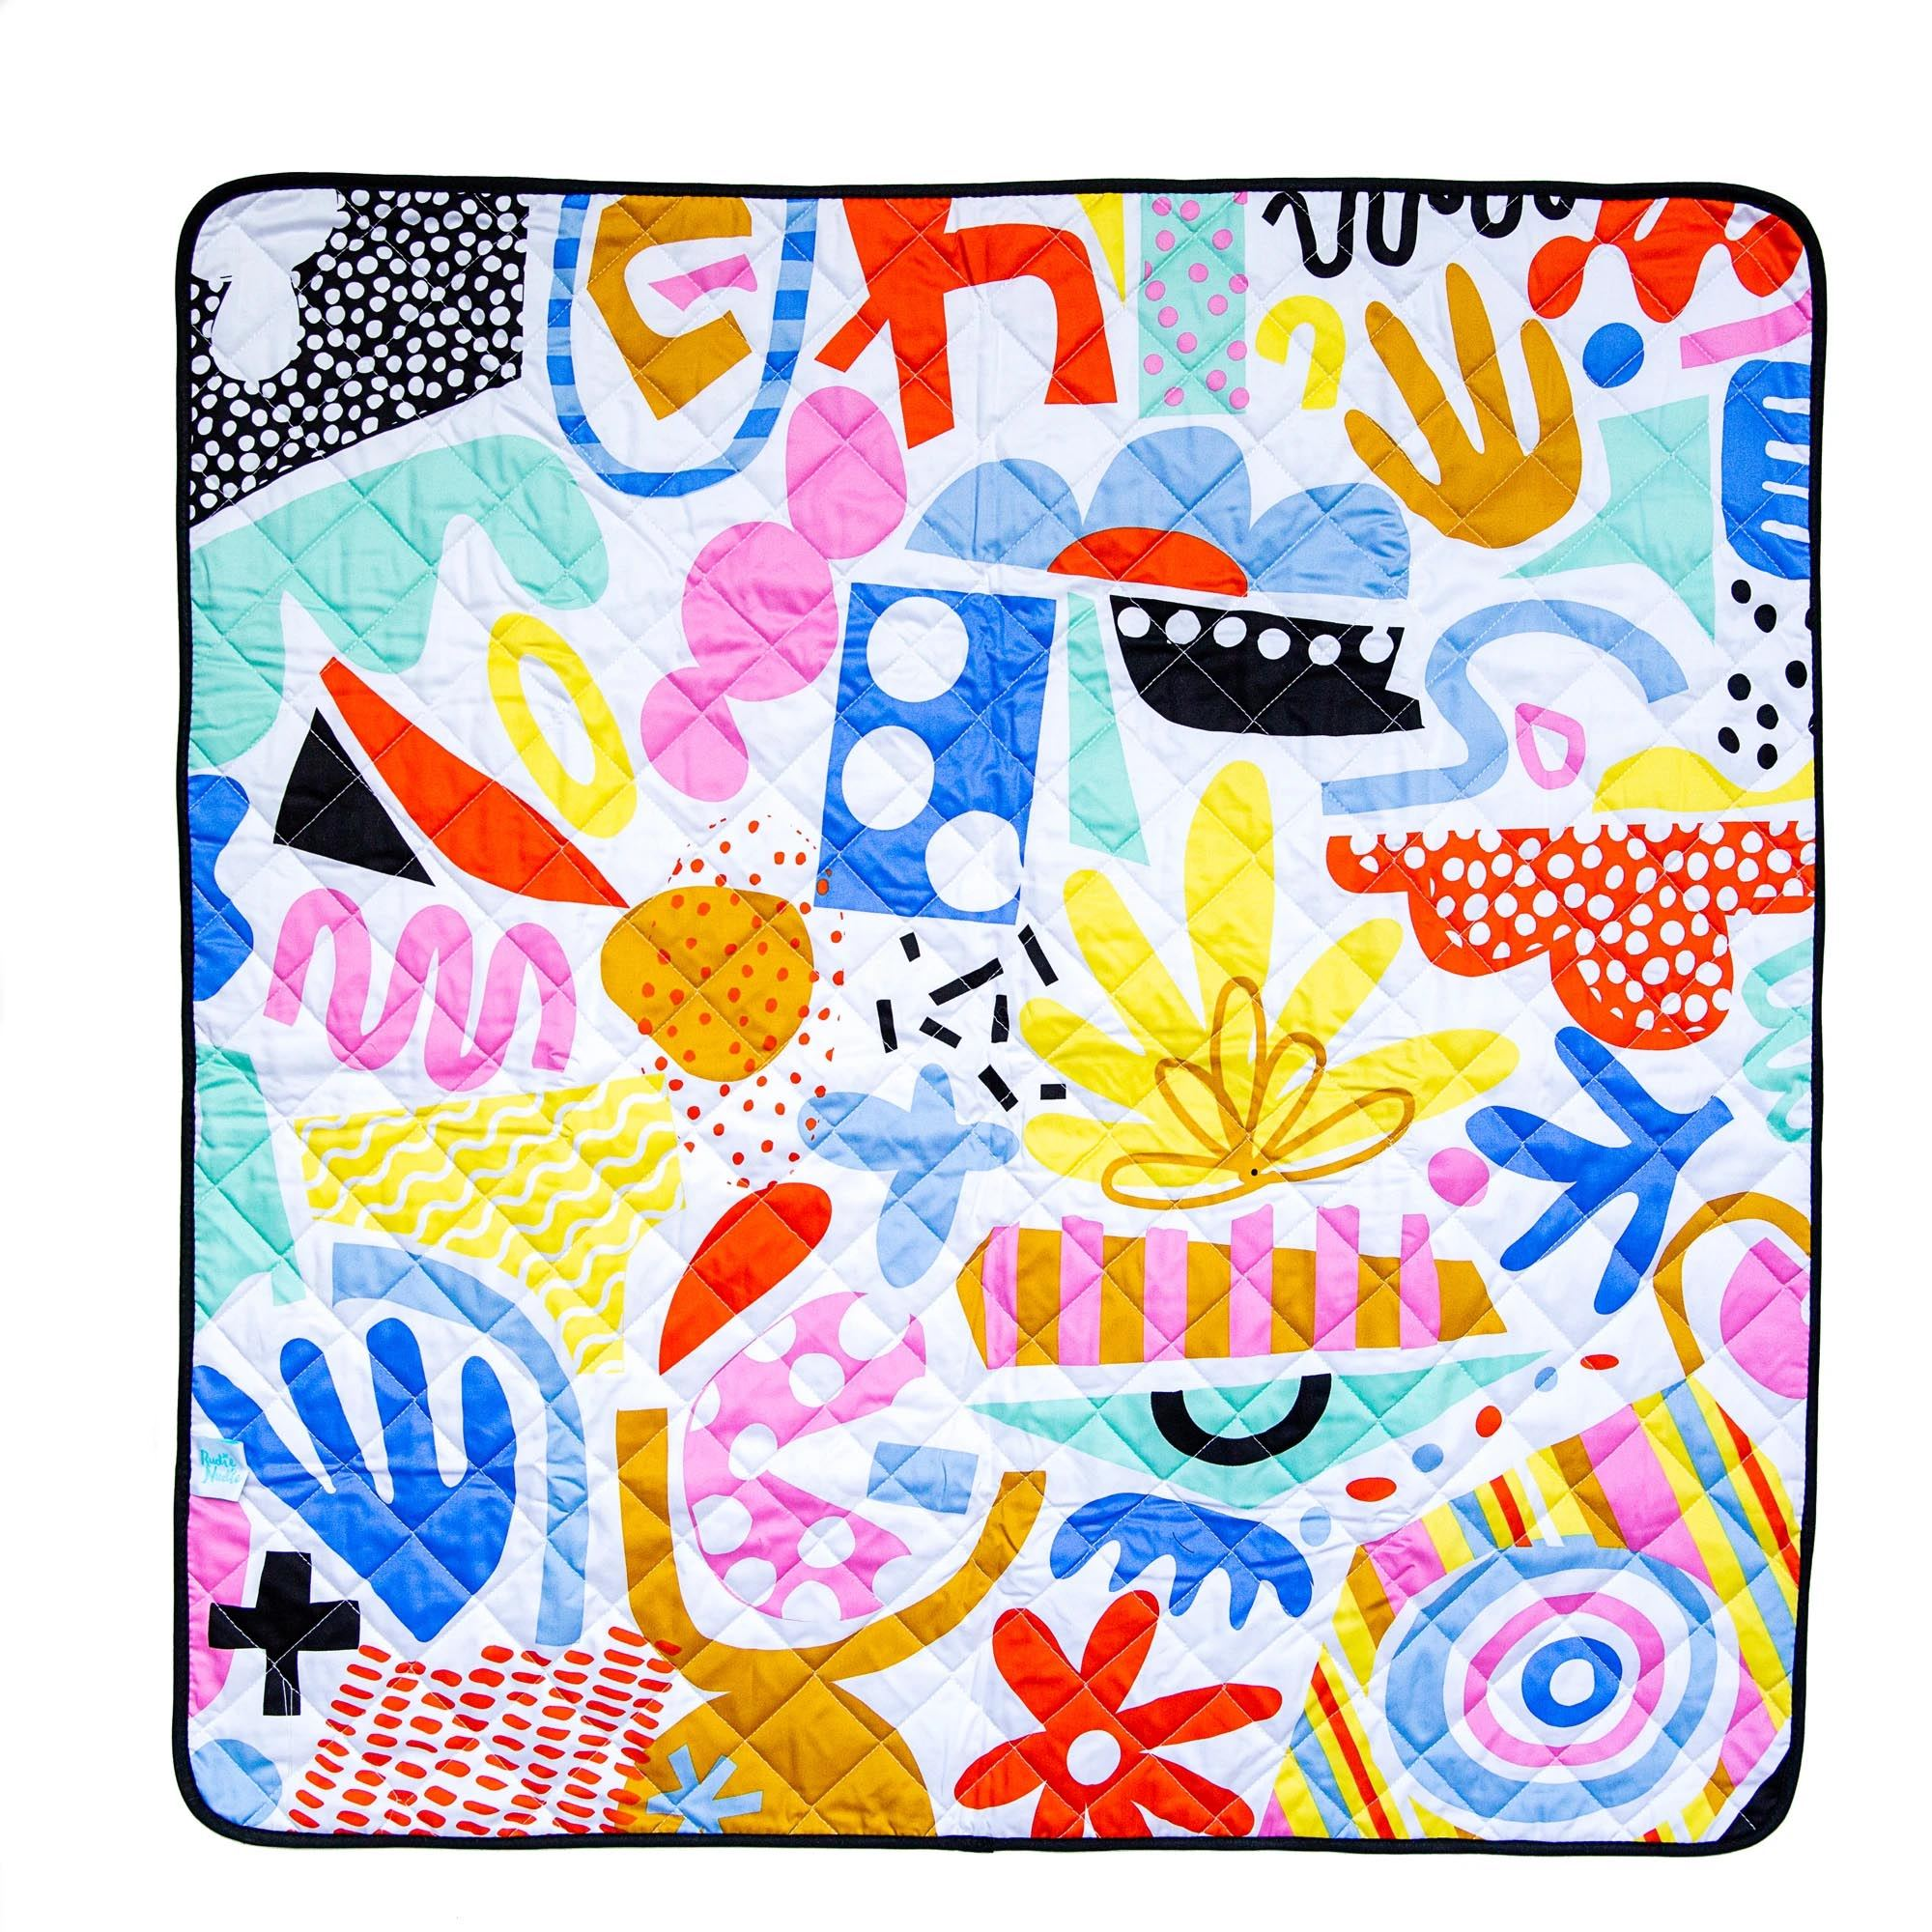 Pop Pip Pow Waterproof Playmat